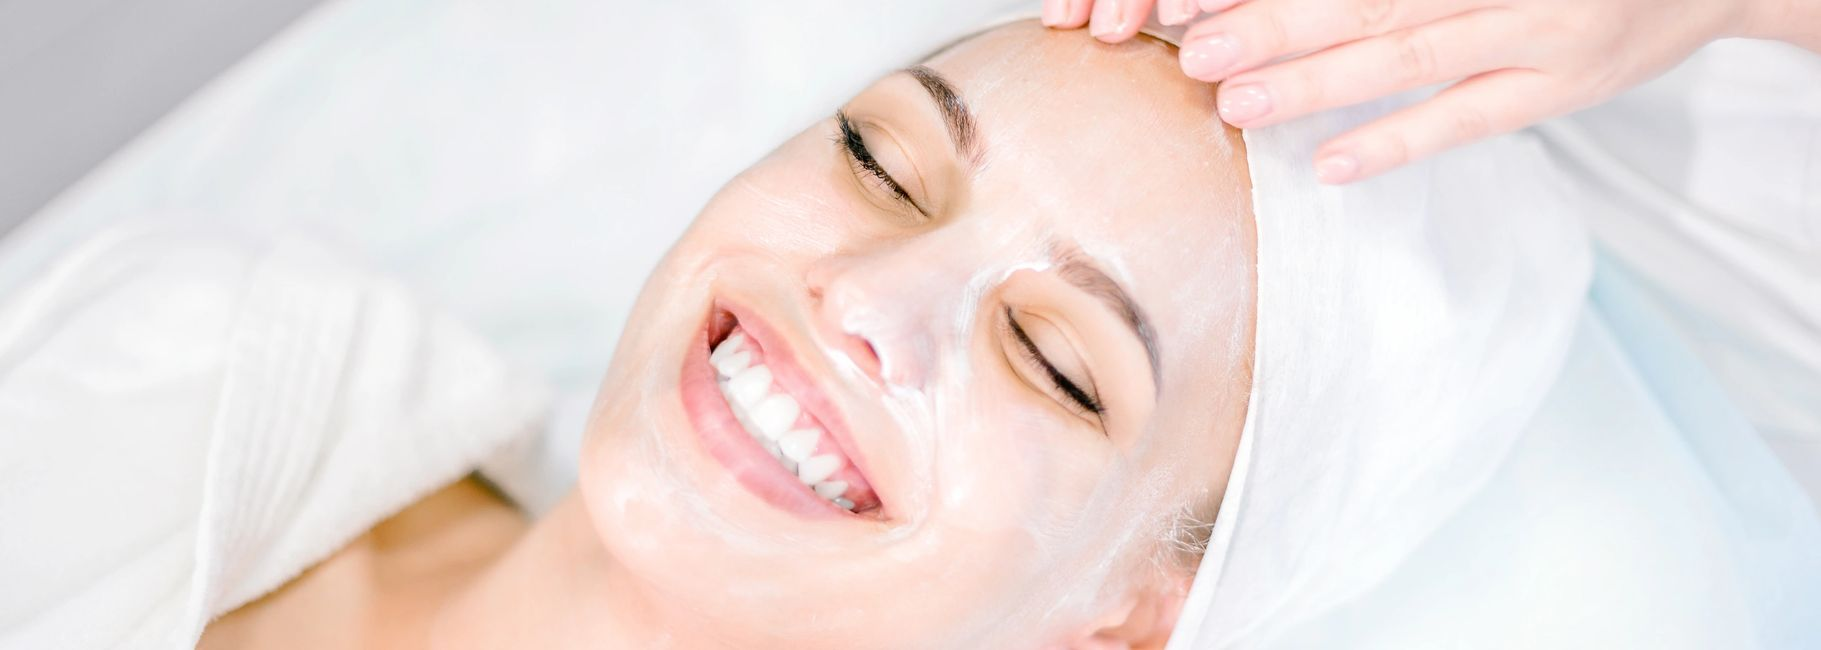 Mini Facial near me, Mini Facial Little Rock, Cheap quick Facial near me, minifacial near me